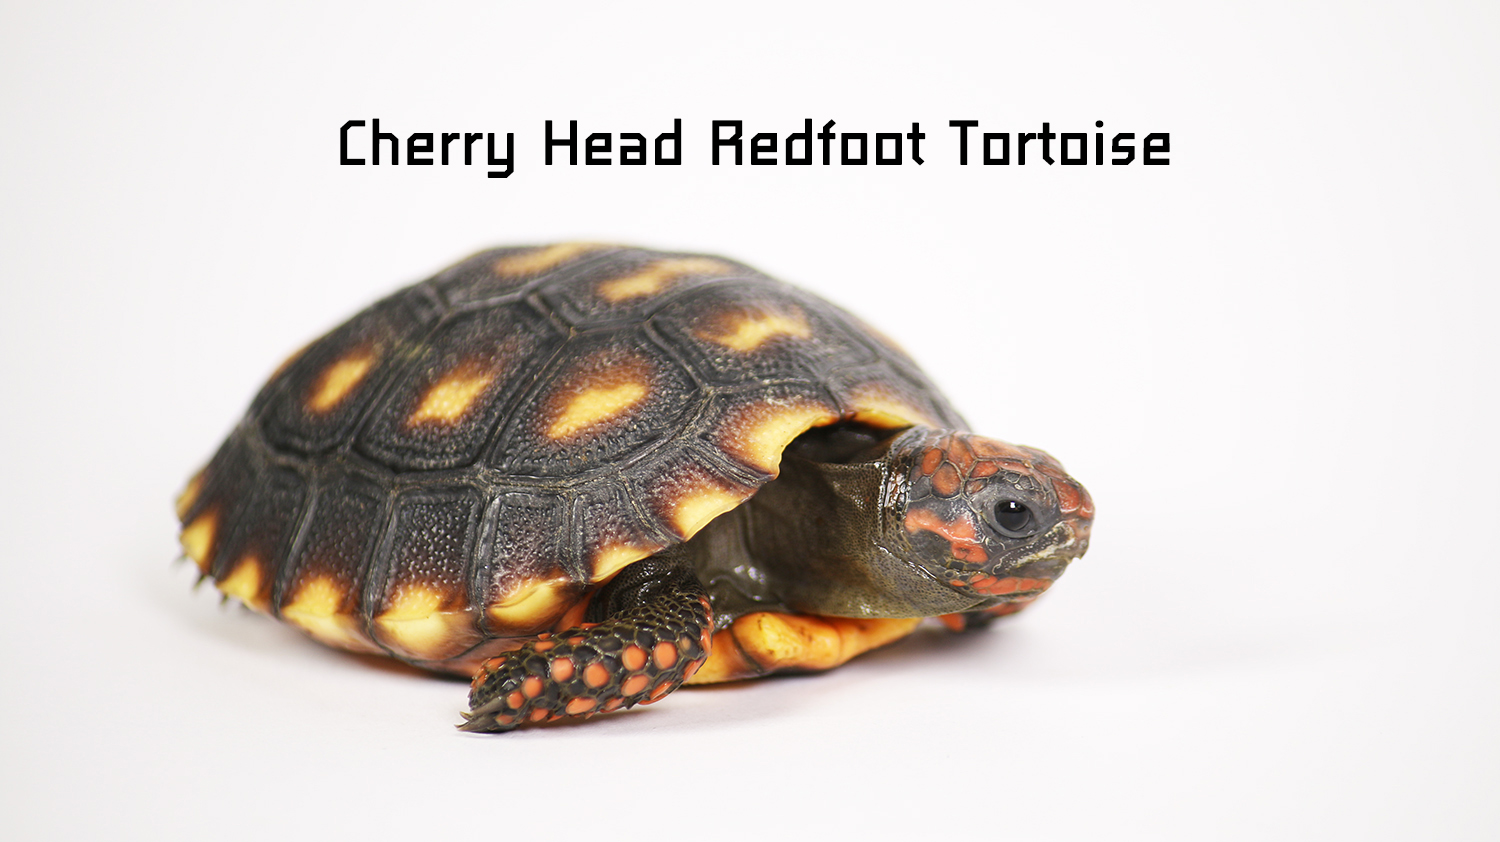 cherry head redfoot Tortoise